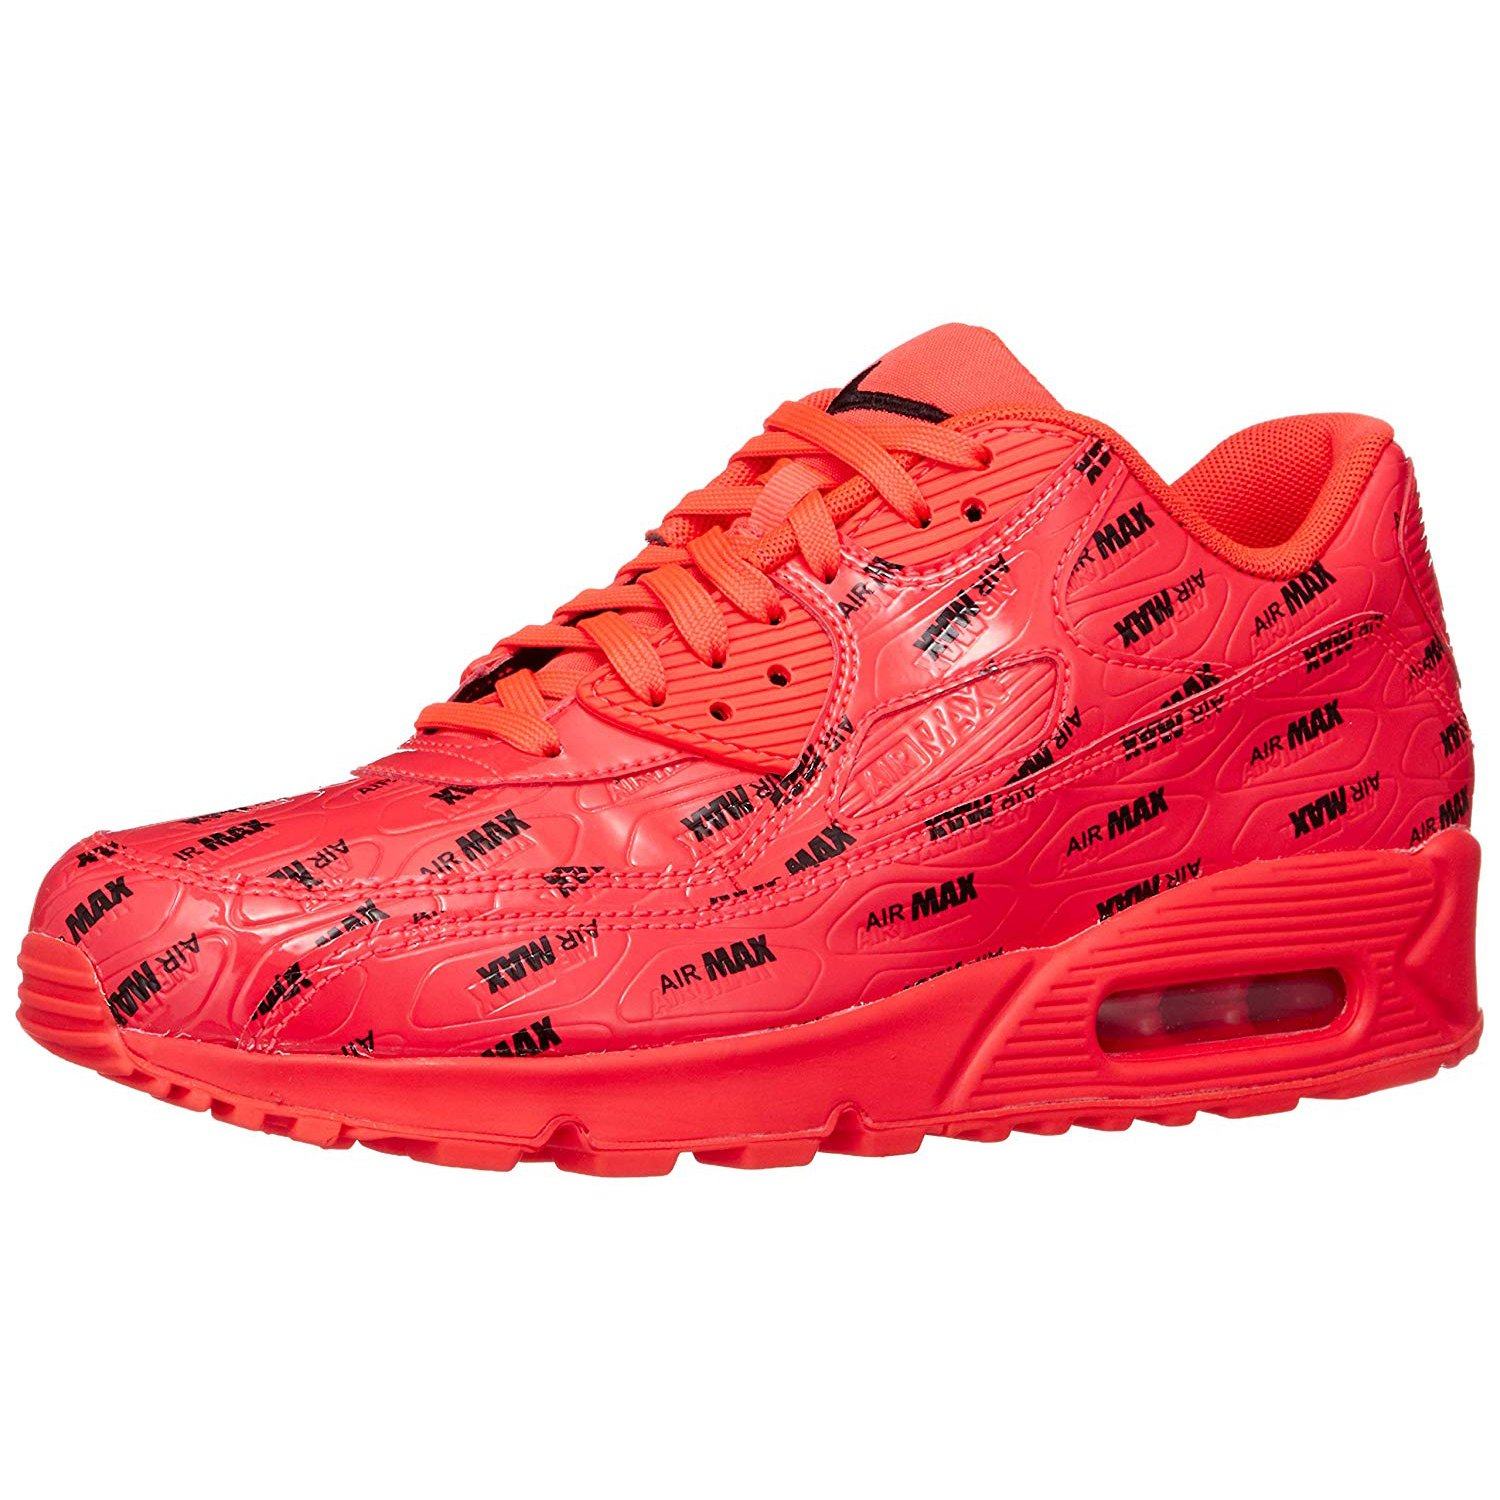 livraison gratuite ec93d 07a7b Nike Air Max 90 Premium Men's Low Top Athletic Sneakers Red 700155-604